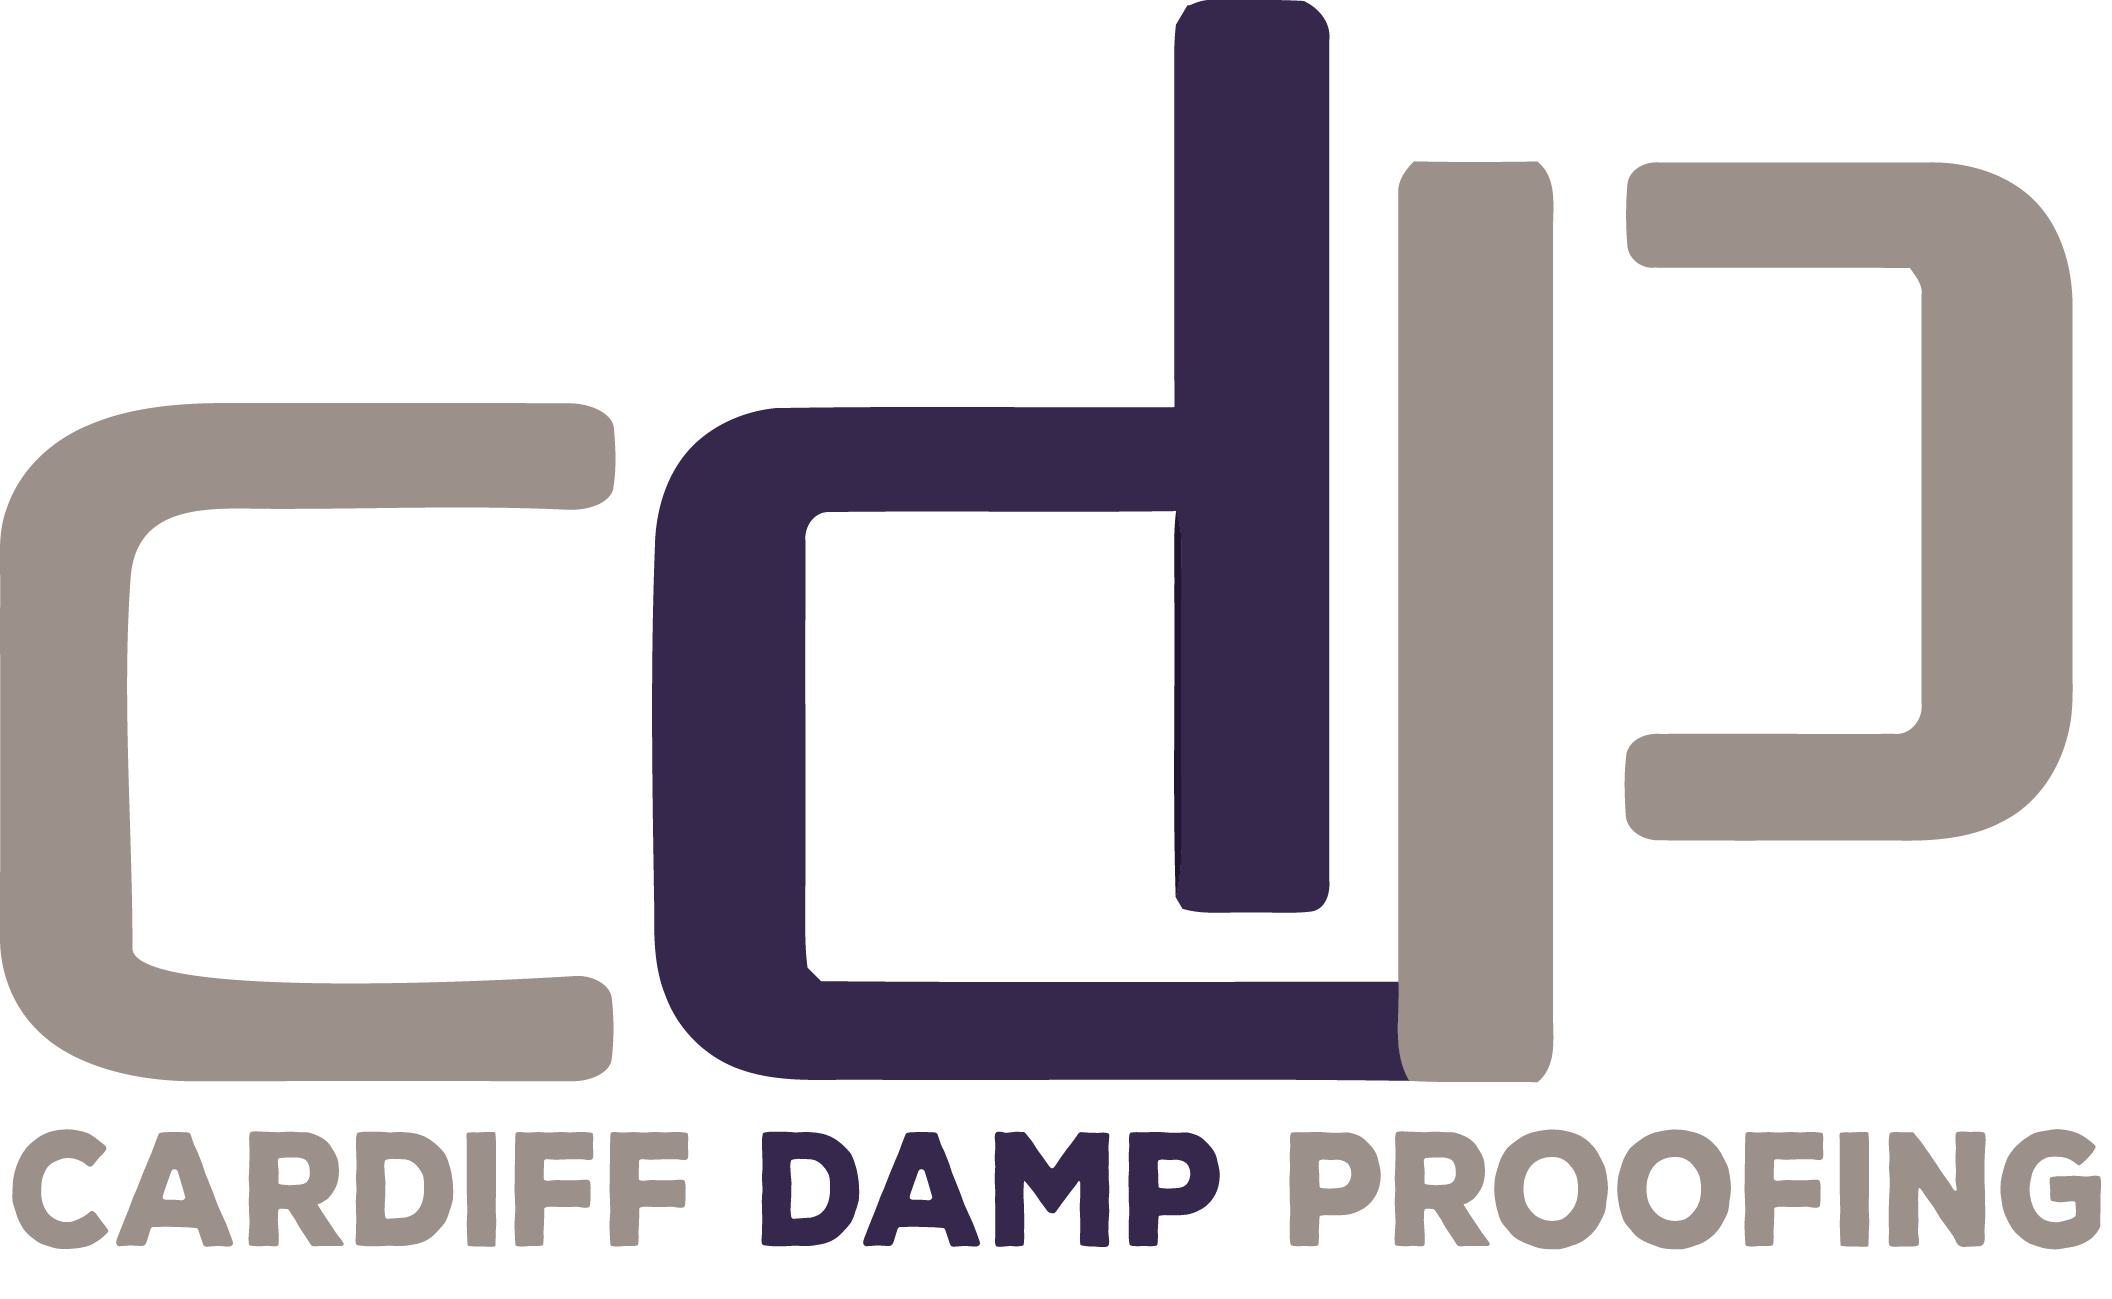 Cardiff Damp Proofing